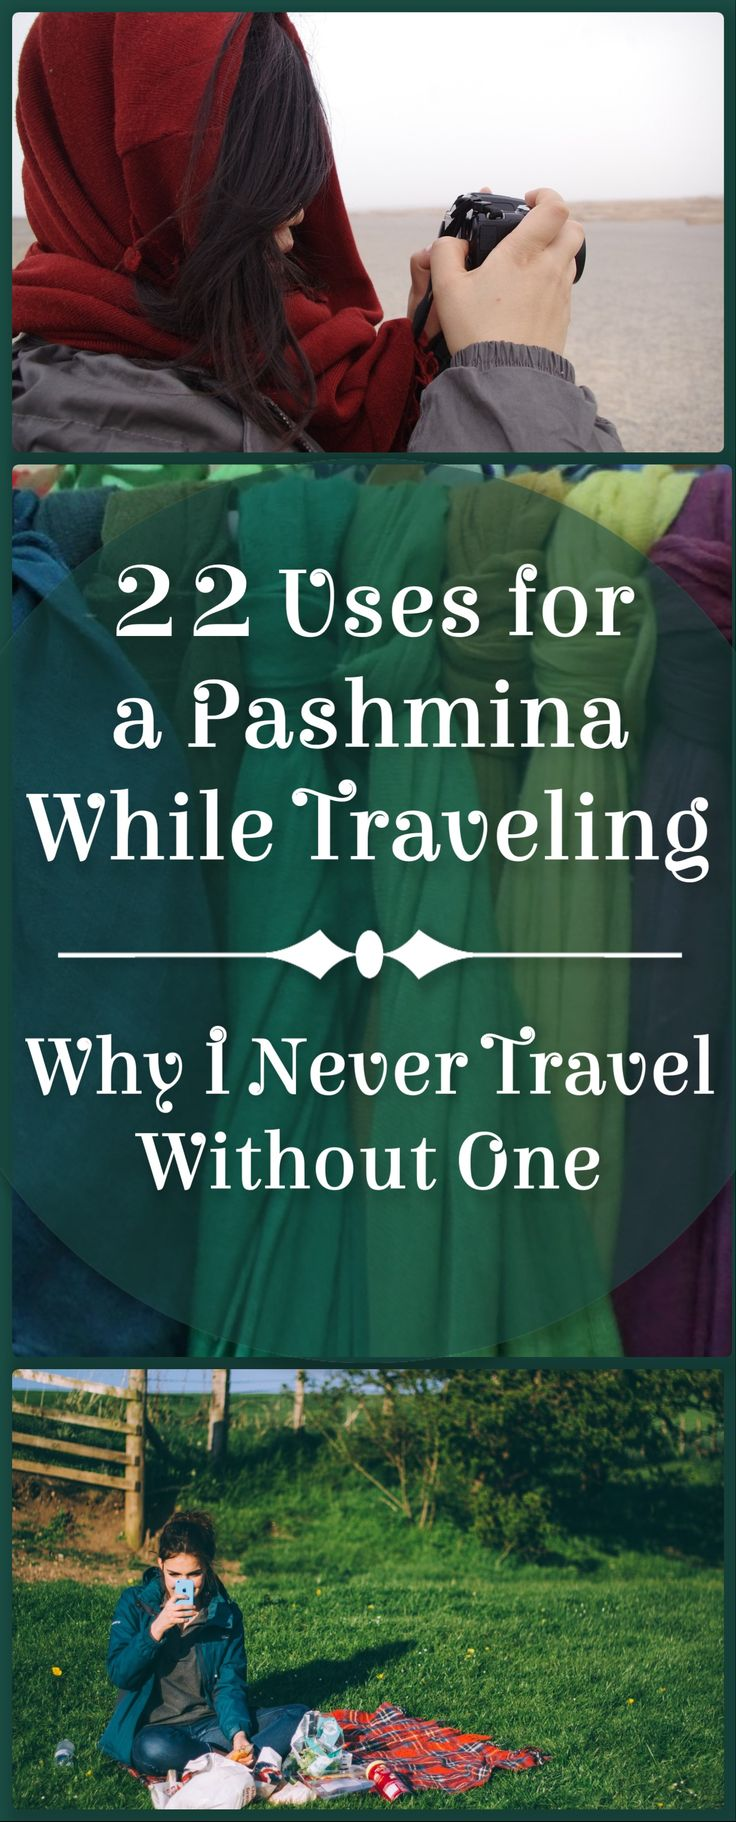 A pashmina is one of the most versatile items you can have while traveling. Call it a pashmina, large scarf, sarong, shawl, whatever you want. A pashmina is a must-have travel item that I simply cannot travel without. When not in use, I wear my pashmina tied to my bag for a pop of color (my favorite is teal). I ... [Read more...]